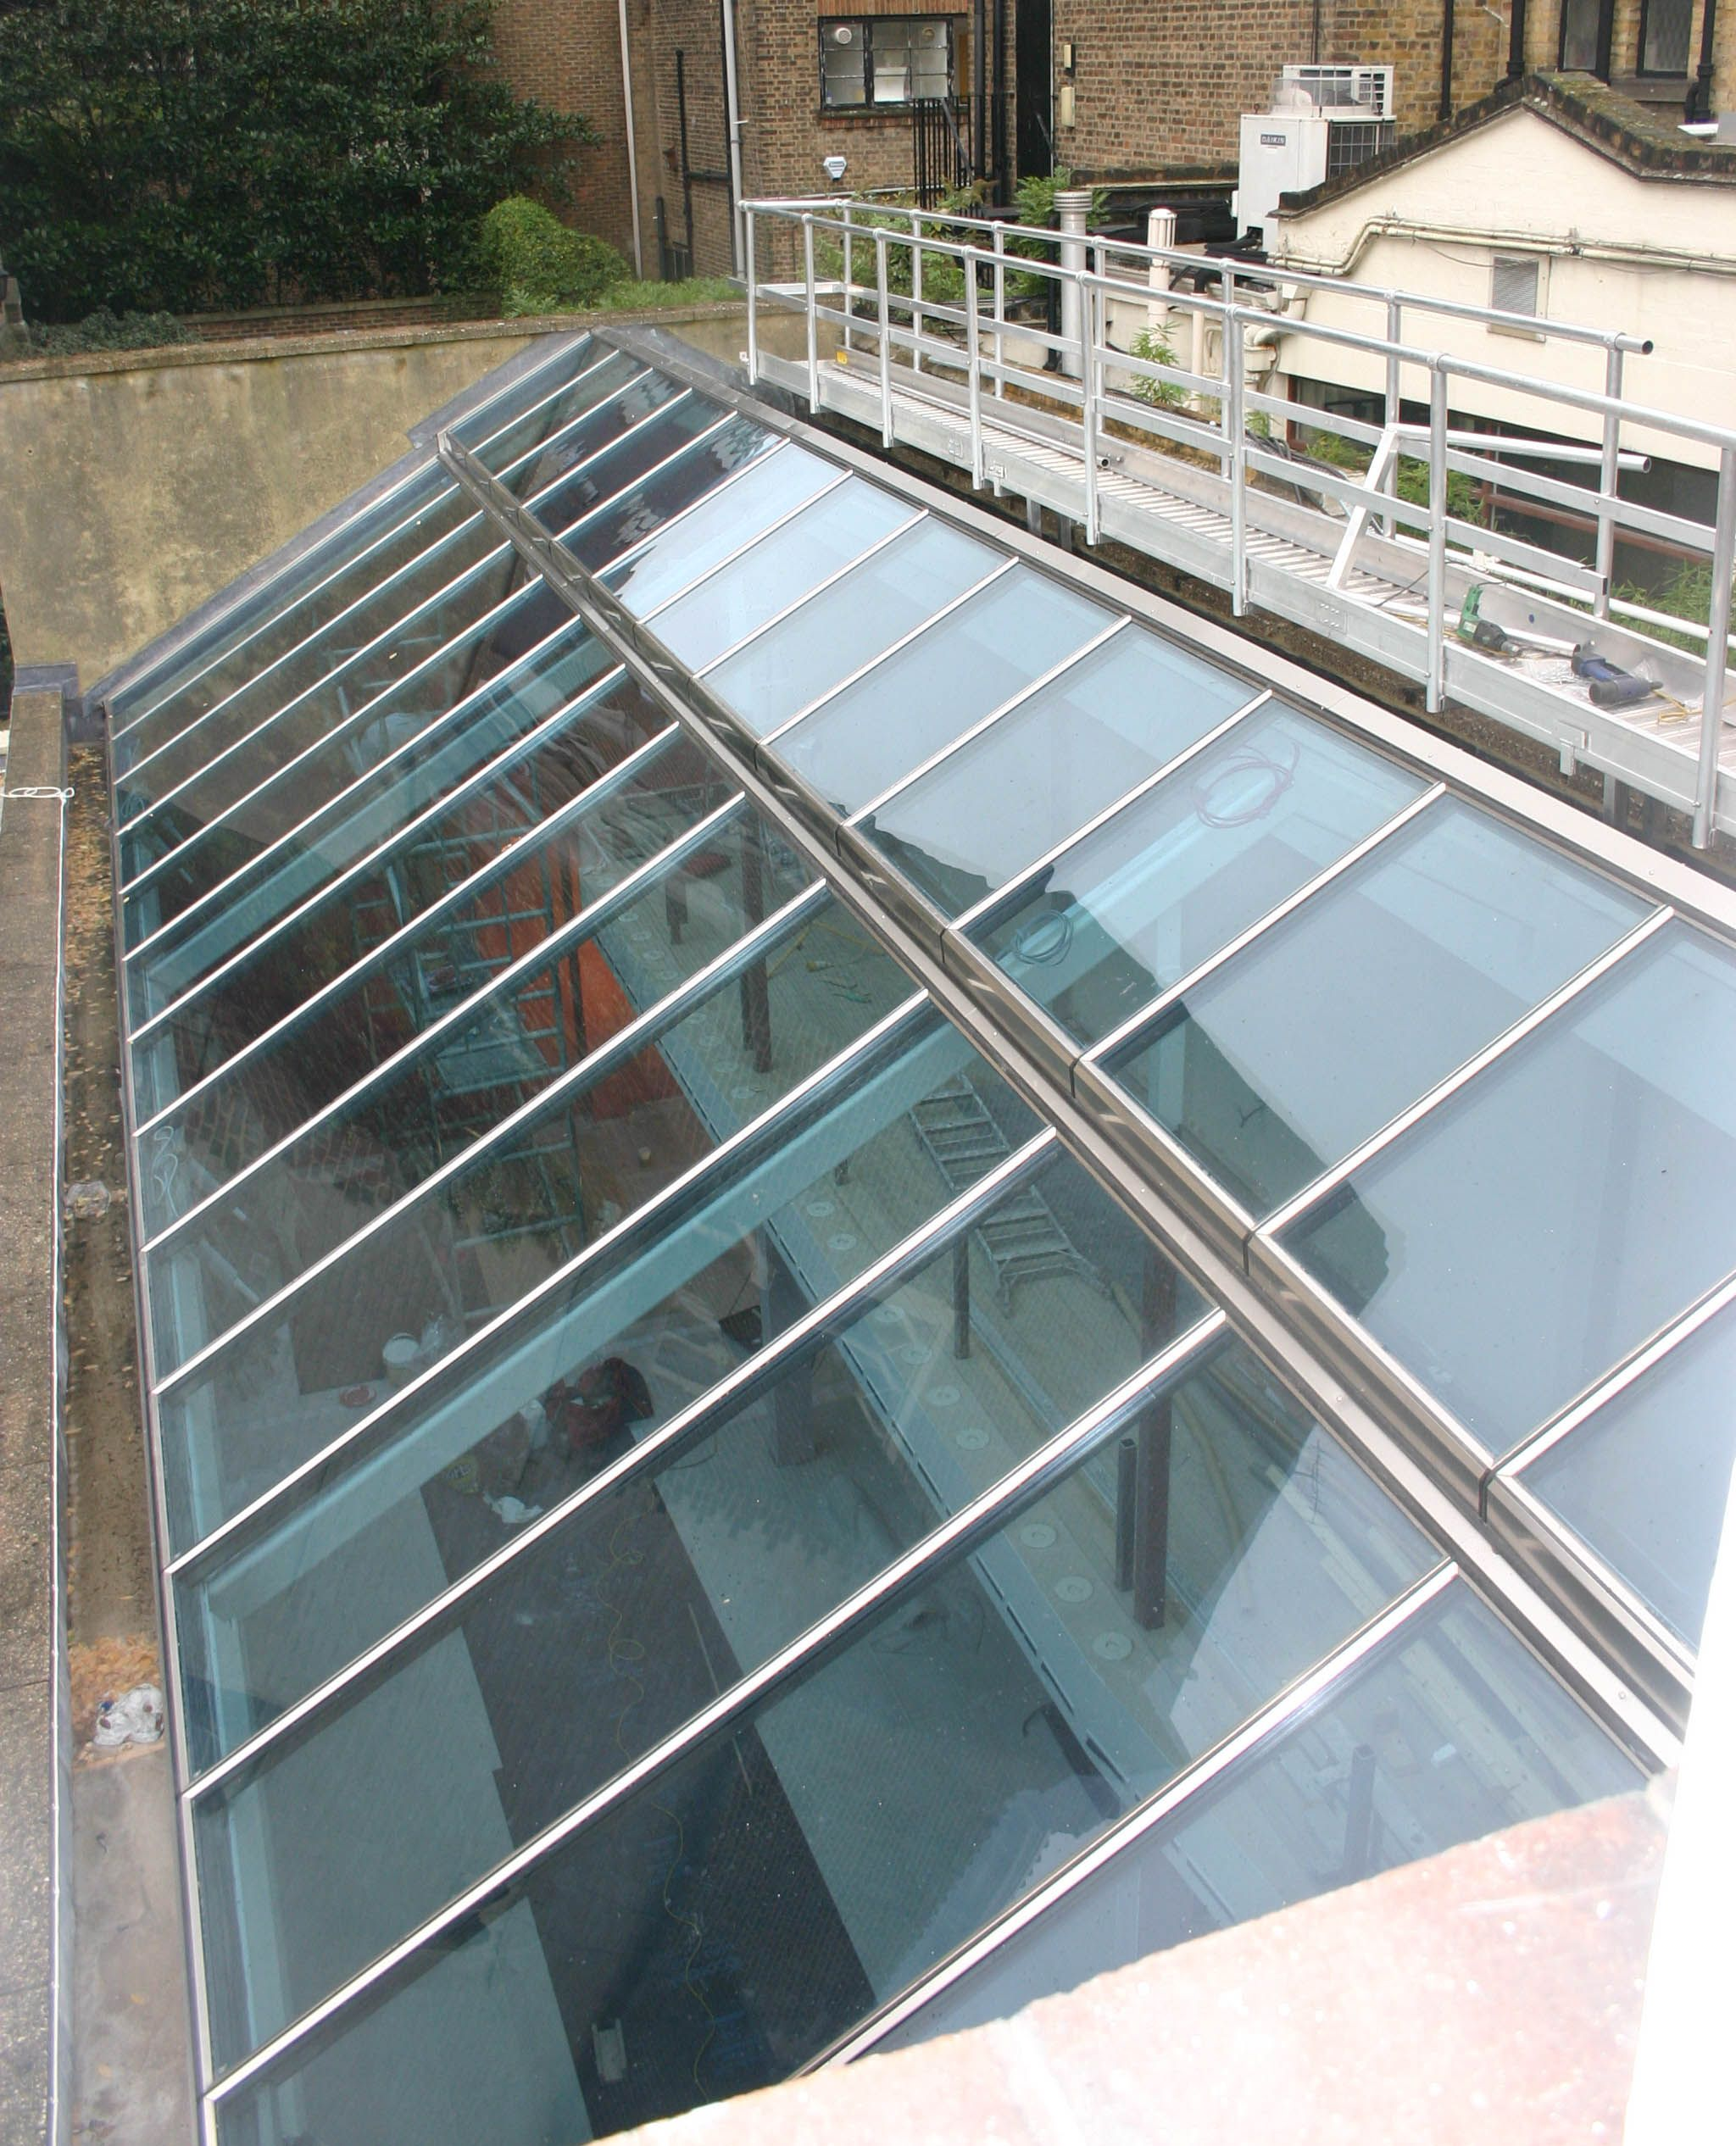 Vrs Is A Panel Based Glass Roof System With Profiles In